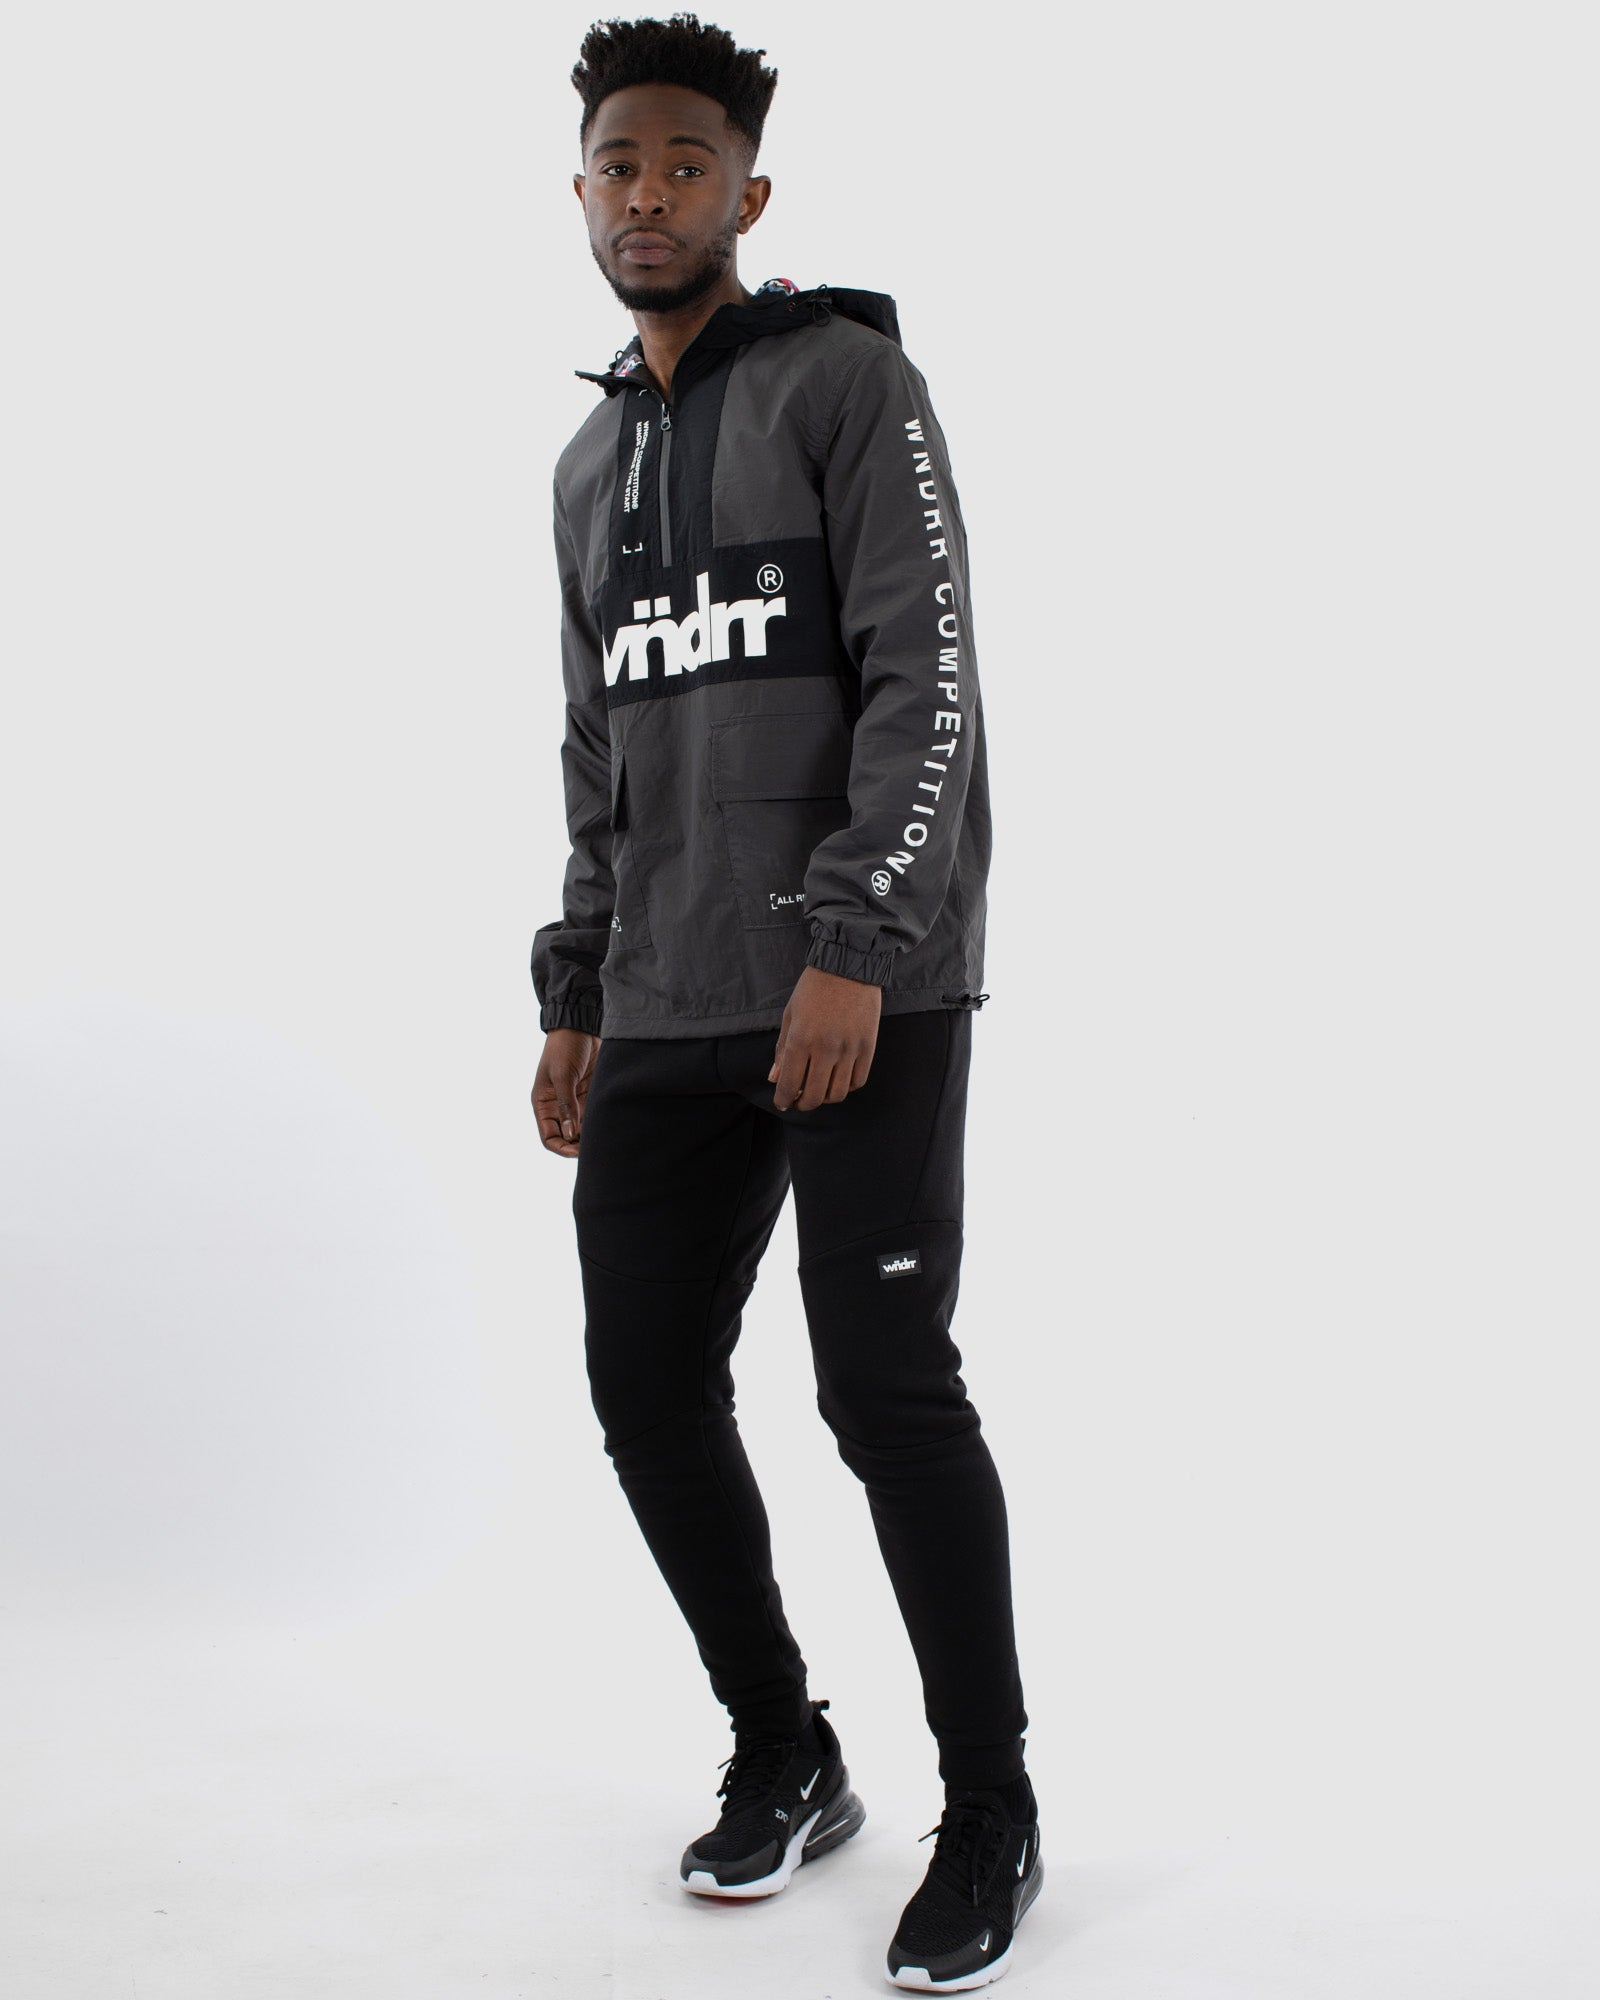 Wndrr Merc Spray Jacket - Black